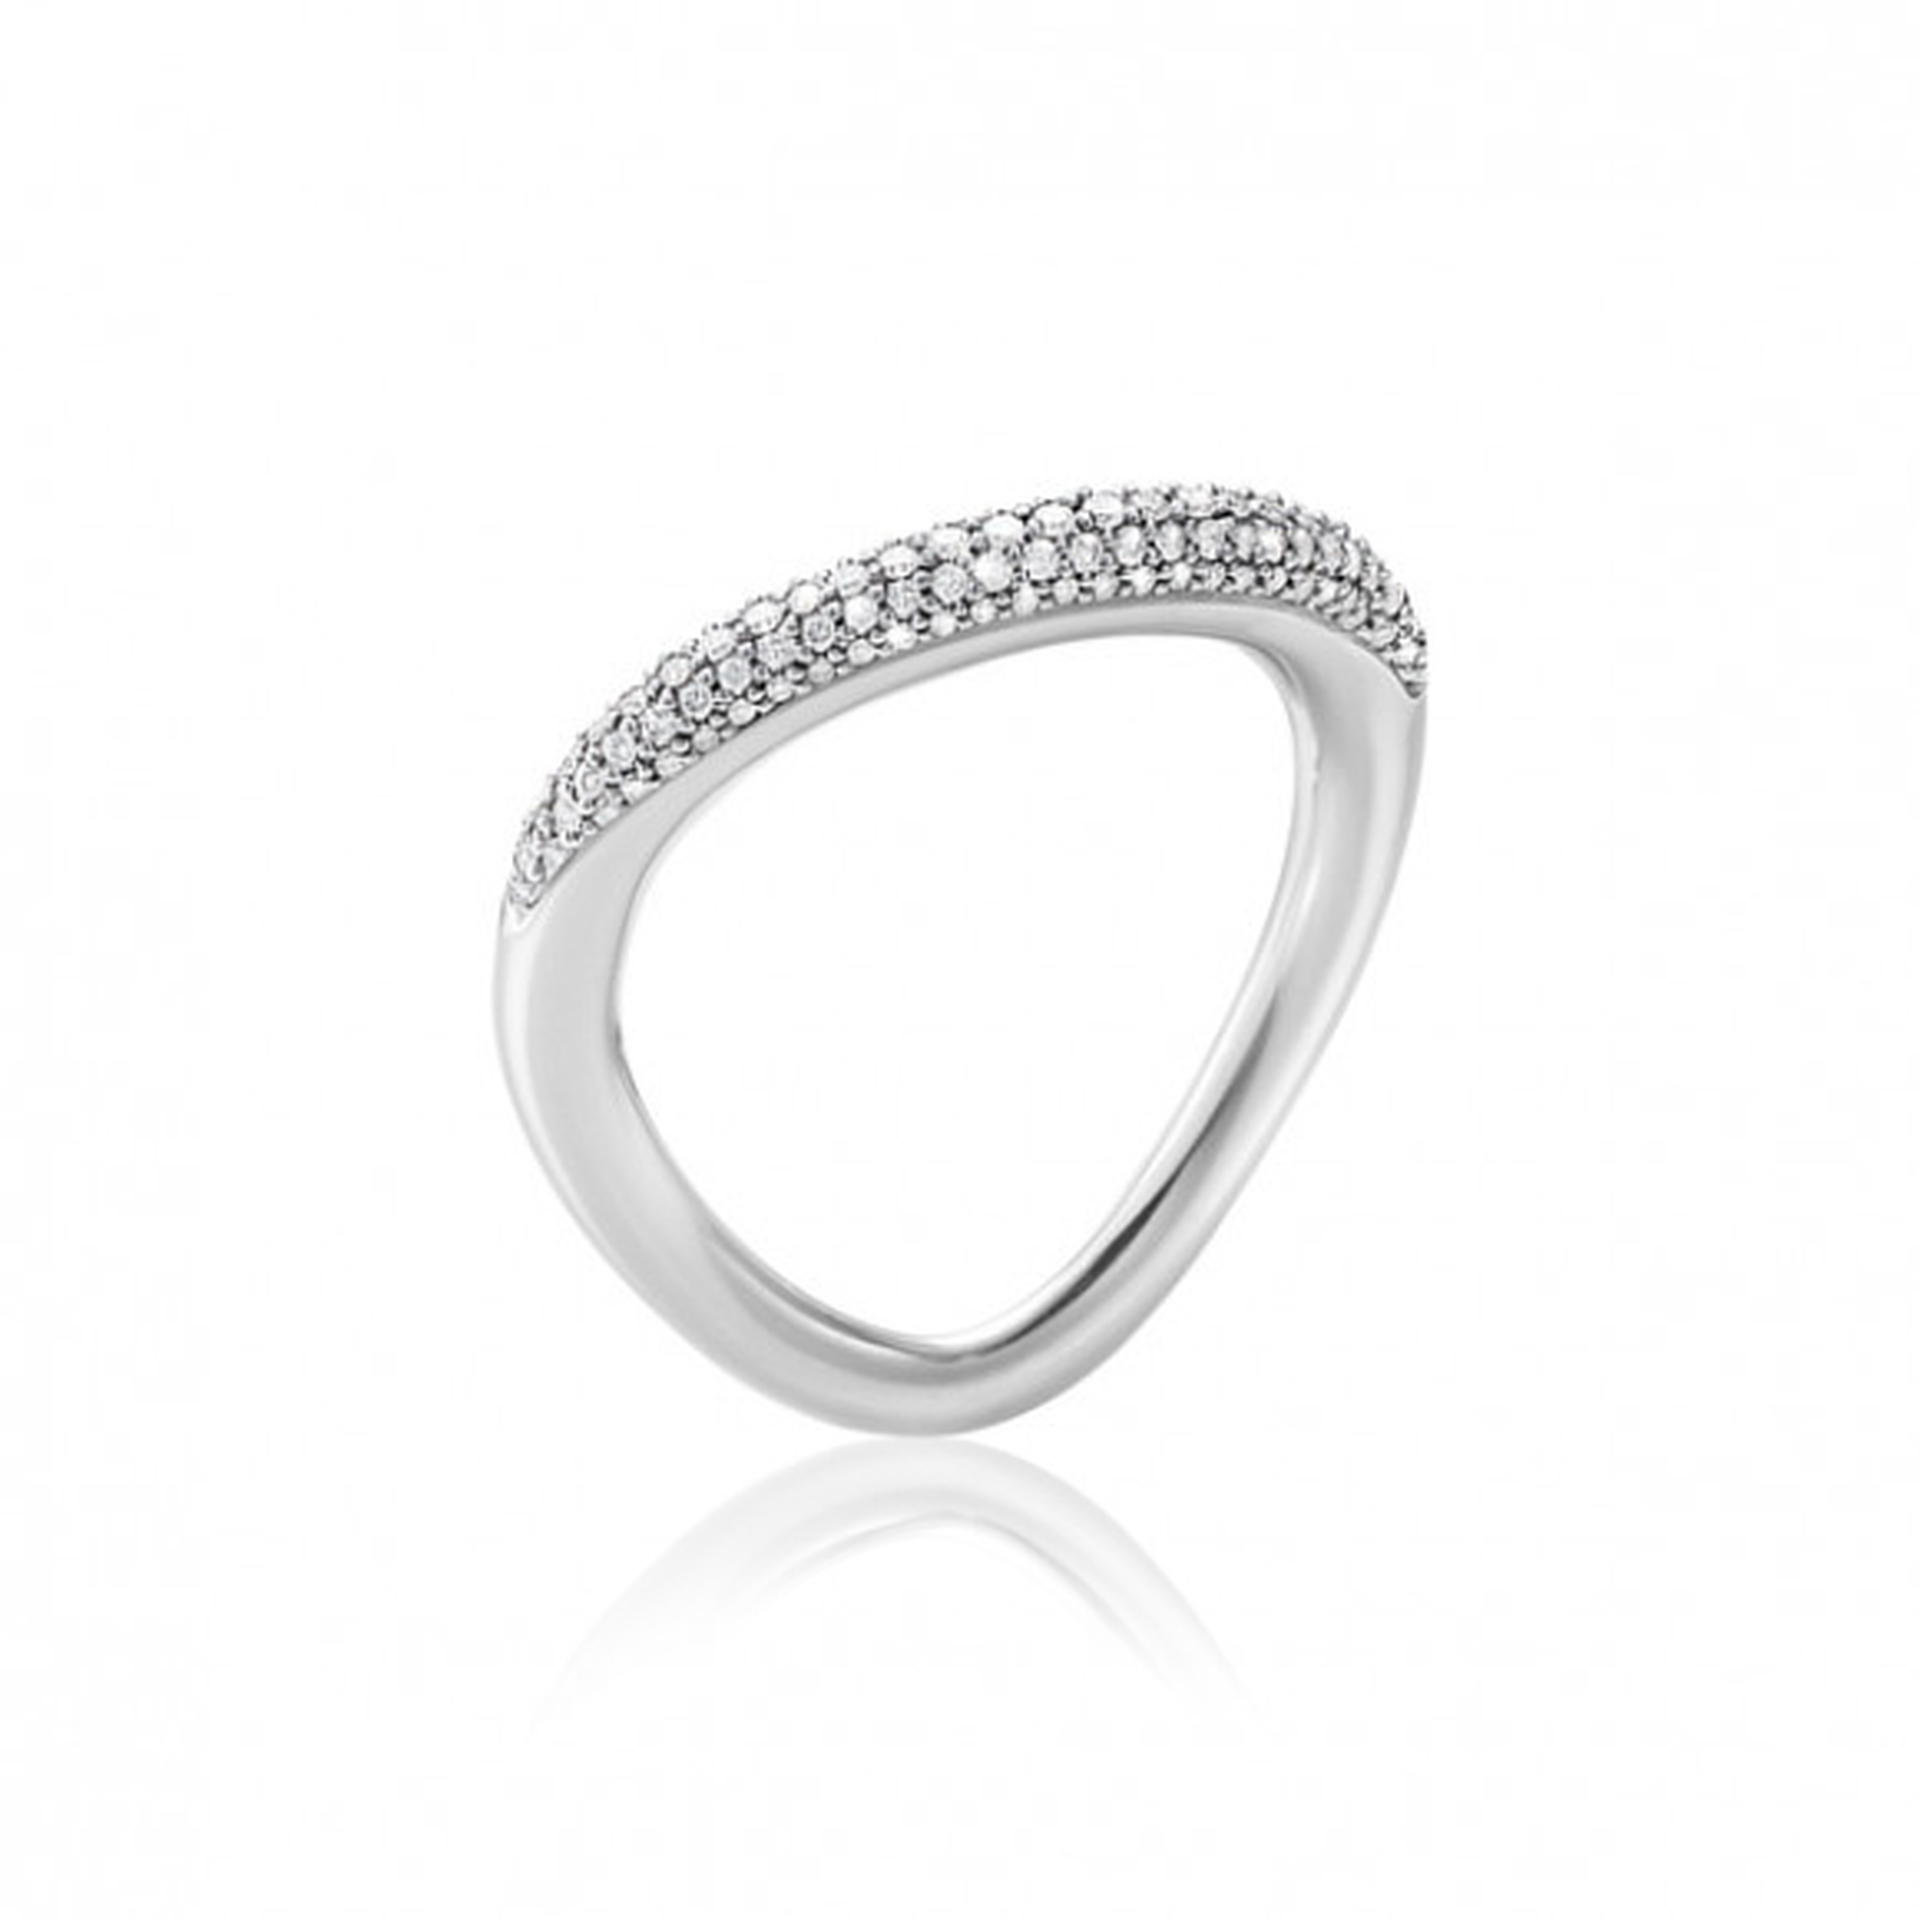 Georg Jensen OFFSPRING RING - Sterling Silver with Brilliant Cut Diamonds